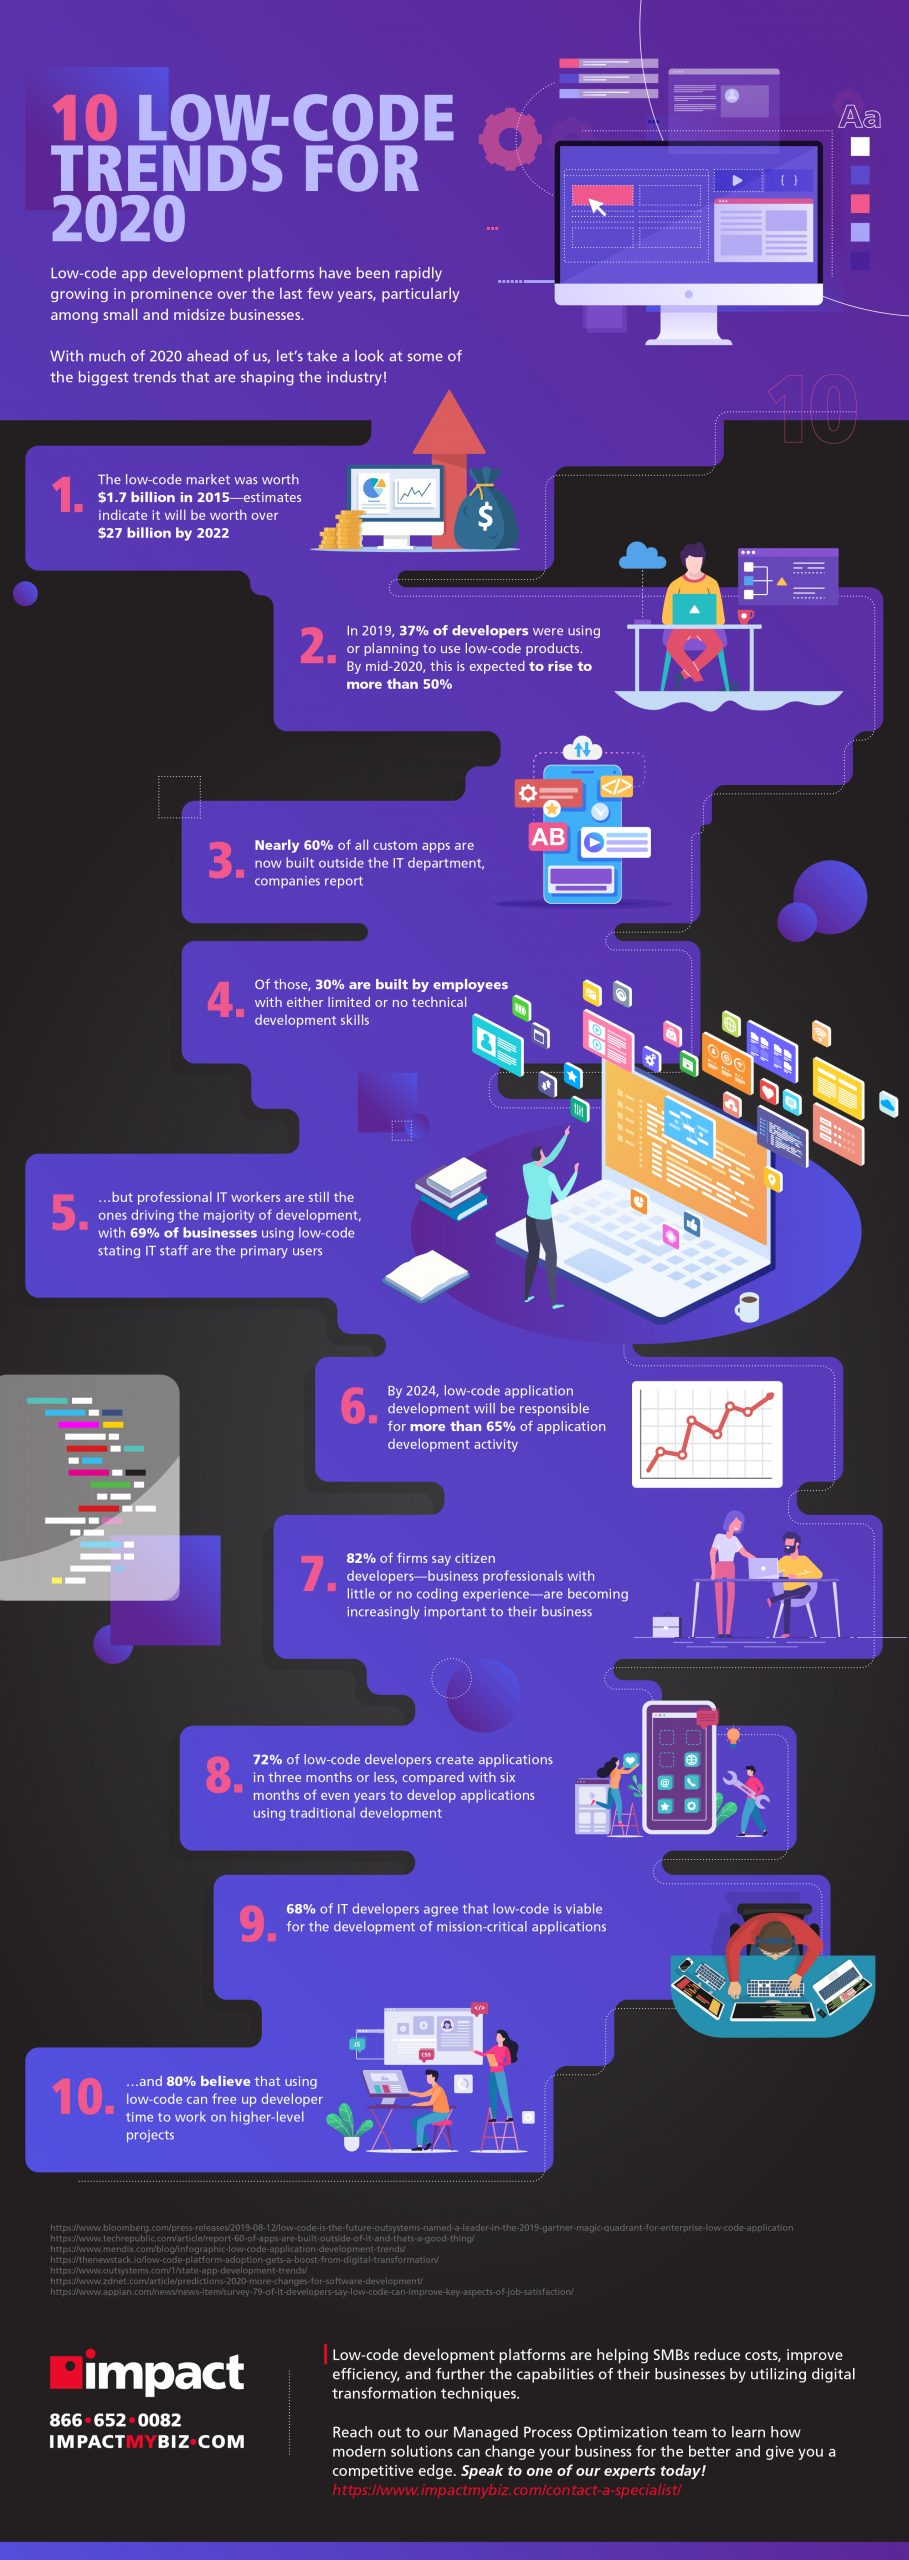 low code trends 2020 infographic